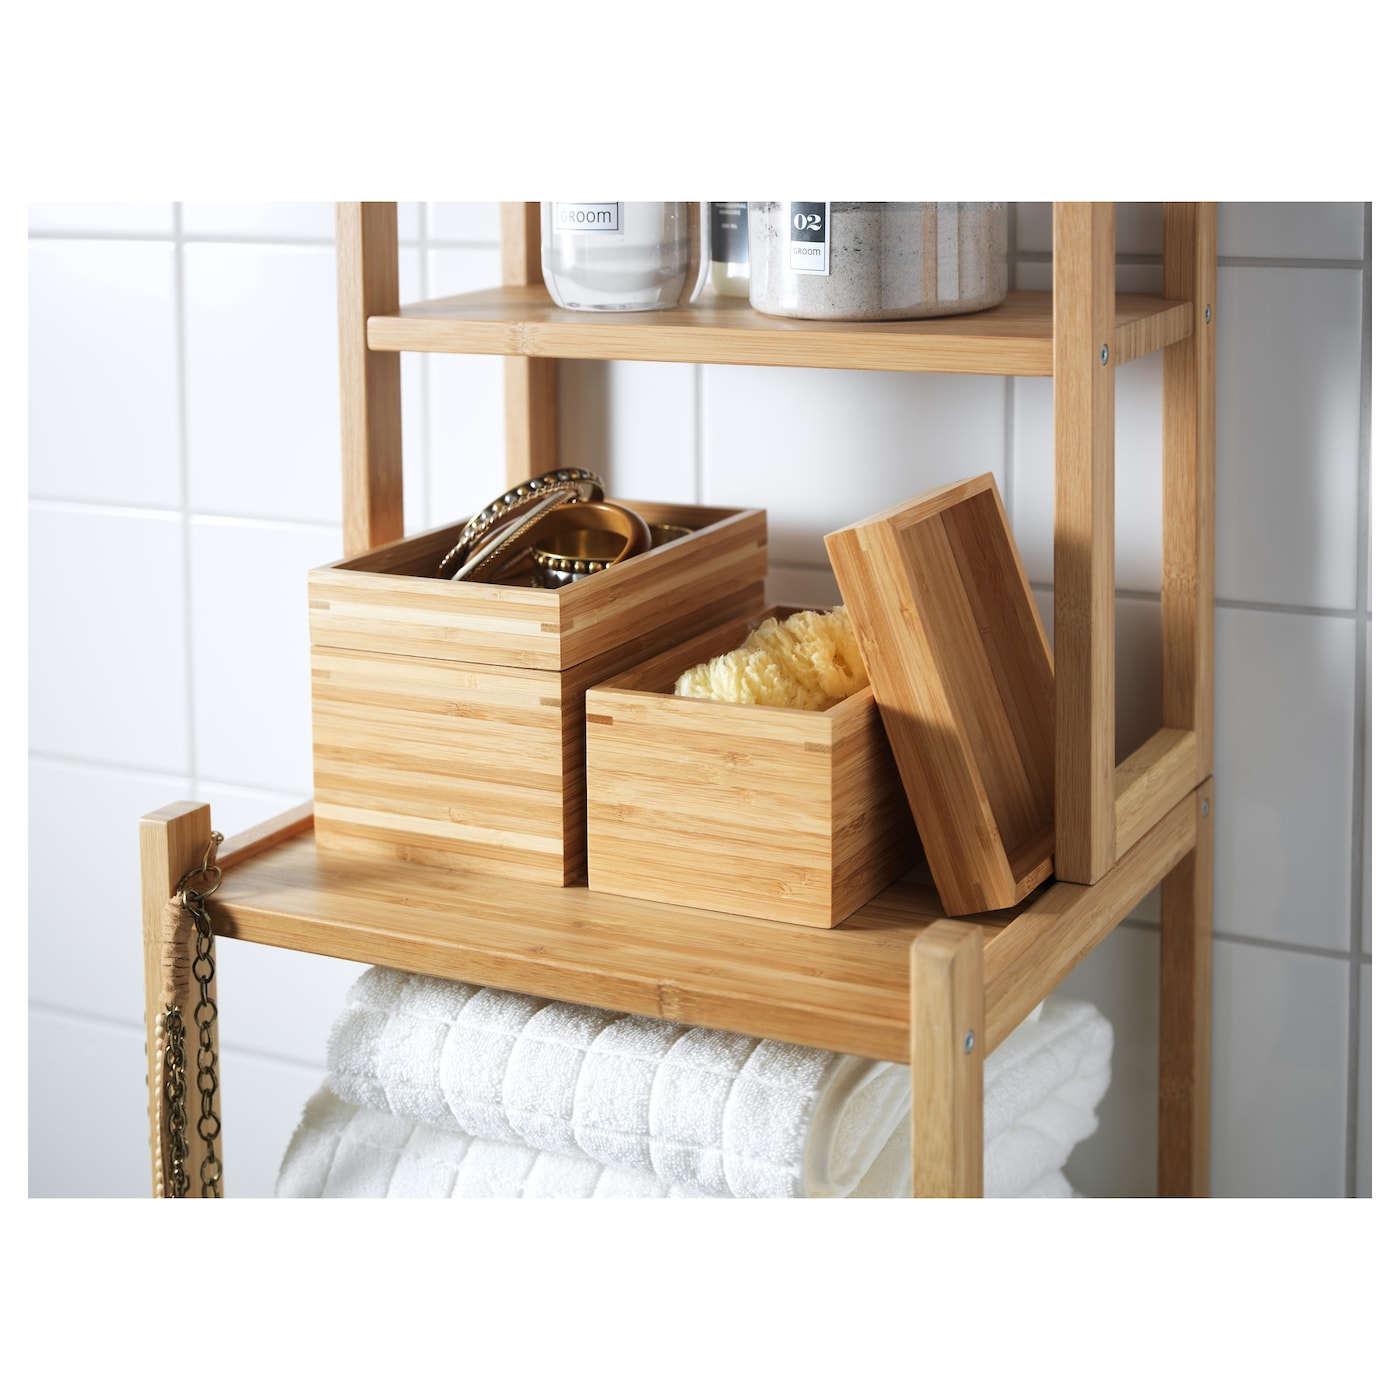 Dragan 2 piece bathroom set bamboo ikea for Accessoires salle de bain ikea